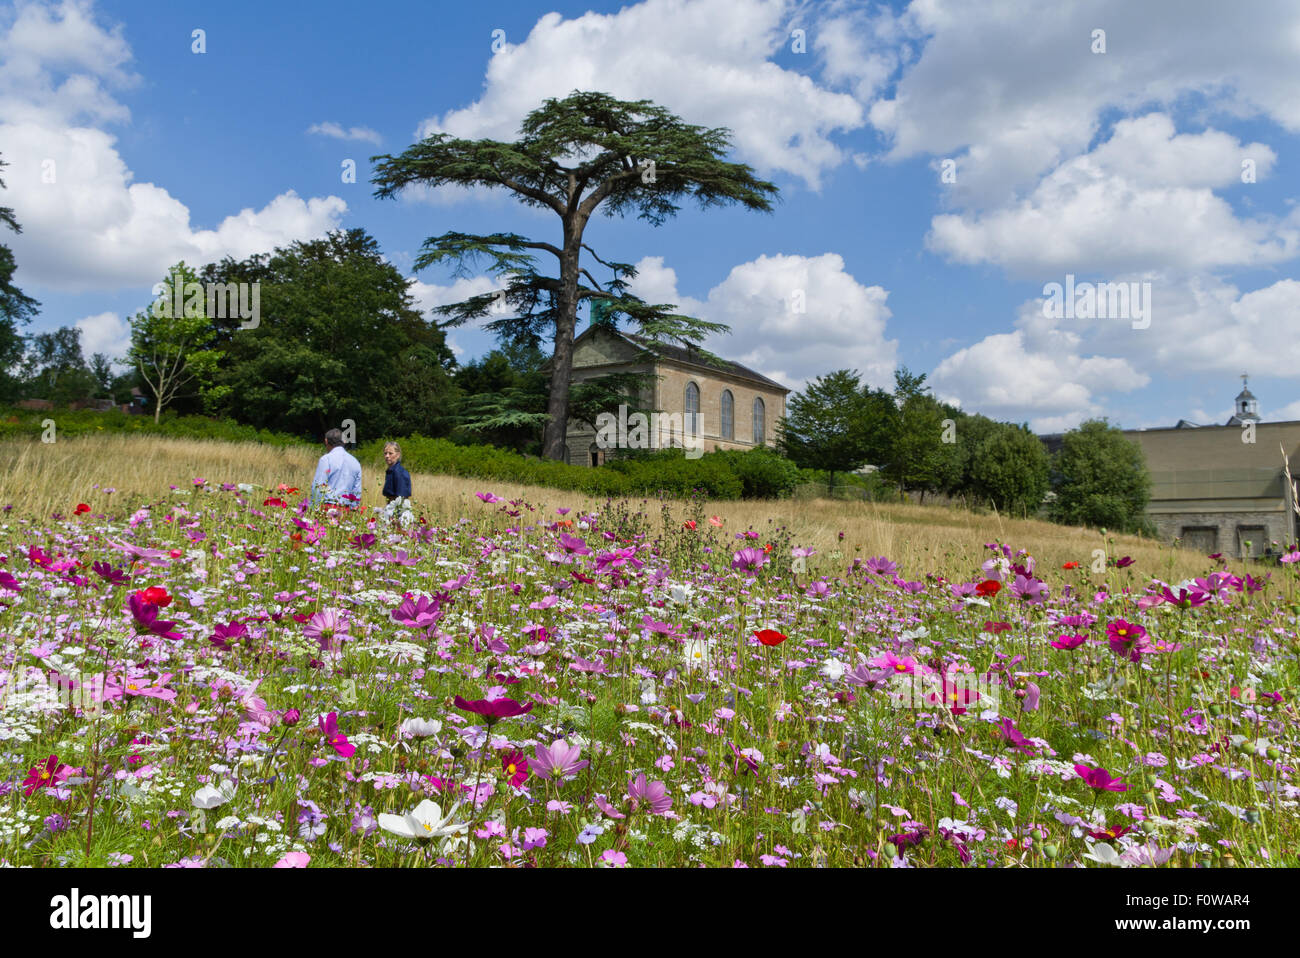 Two visitors meandering through the wildflower meadow in the grounds of Compton Verney House, Warwickshire. - Stock Image